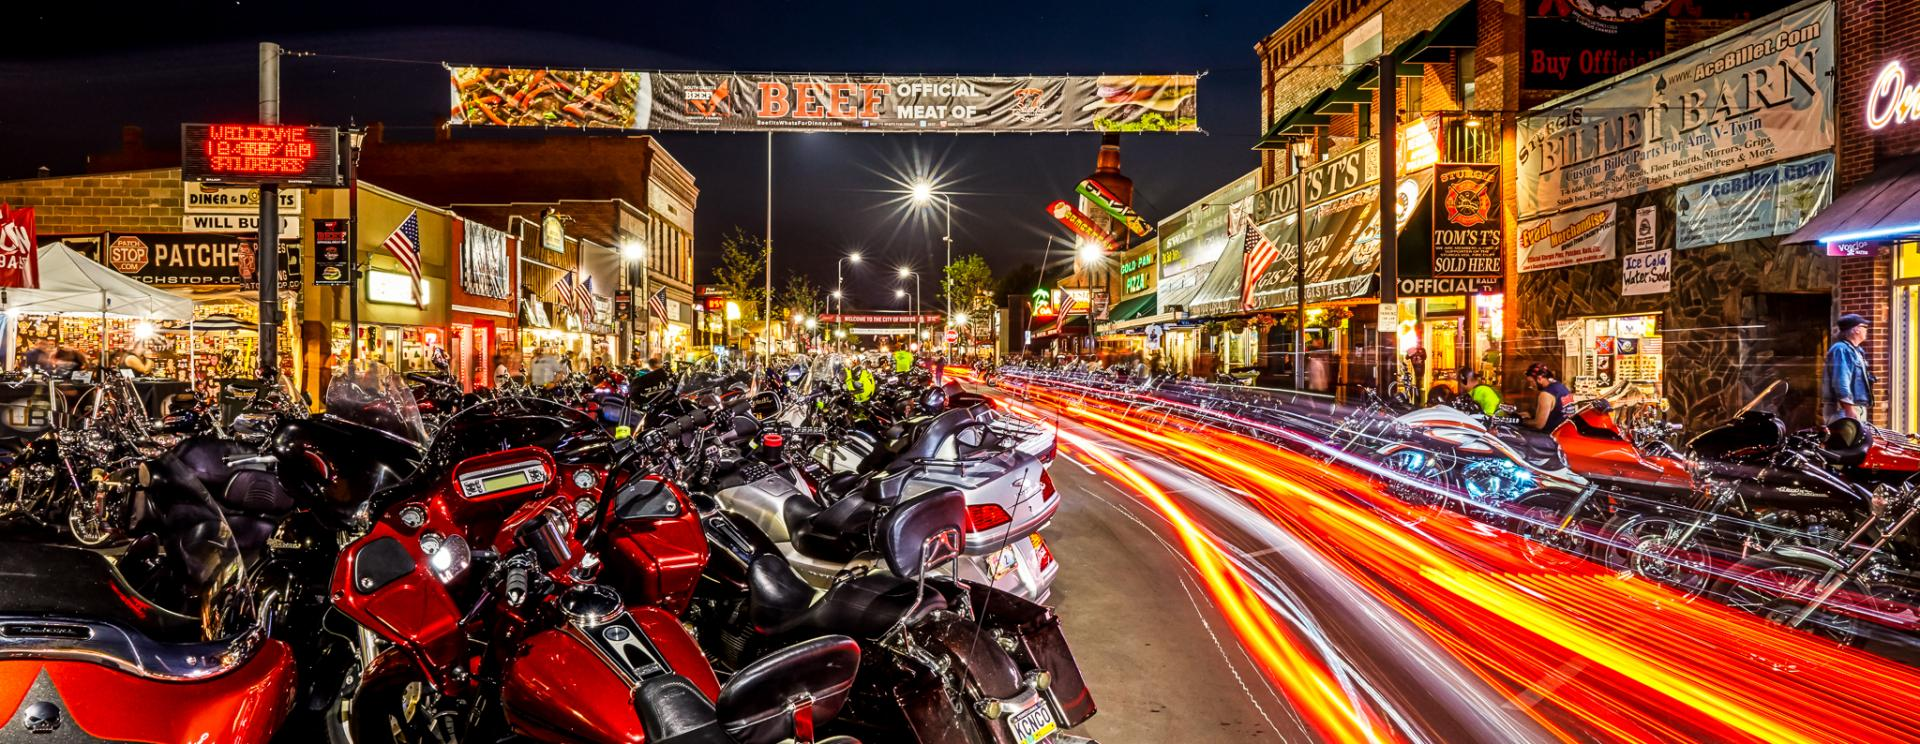 80th Annual Sturgis Motorcycle Rally | Black Hills & Badlands ...